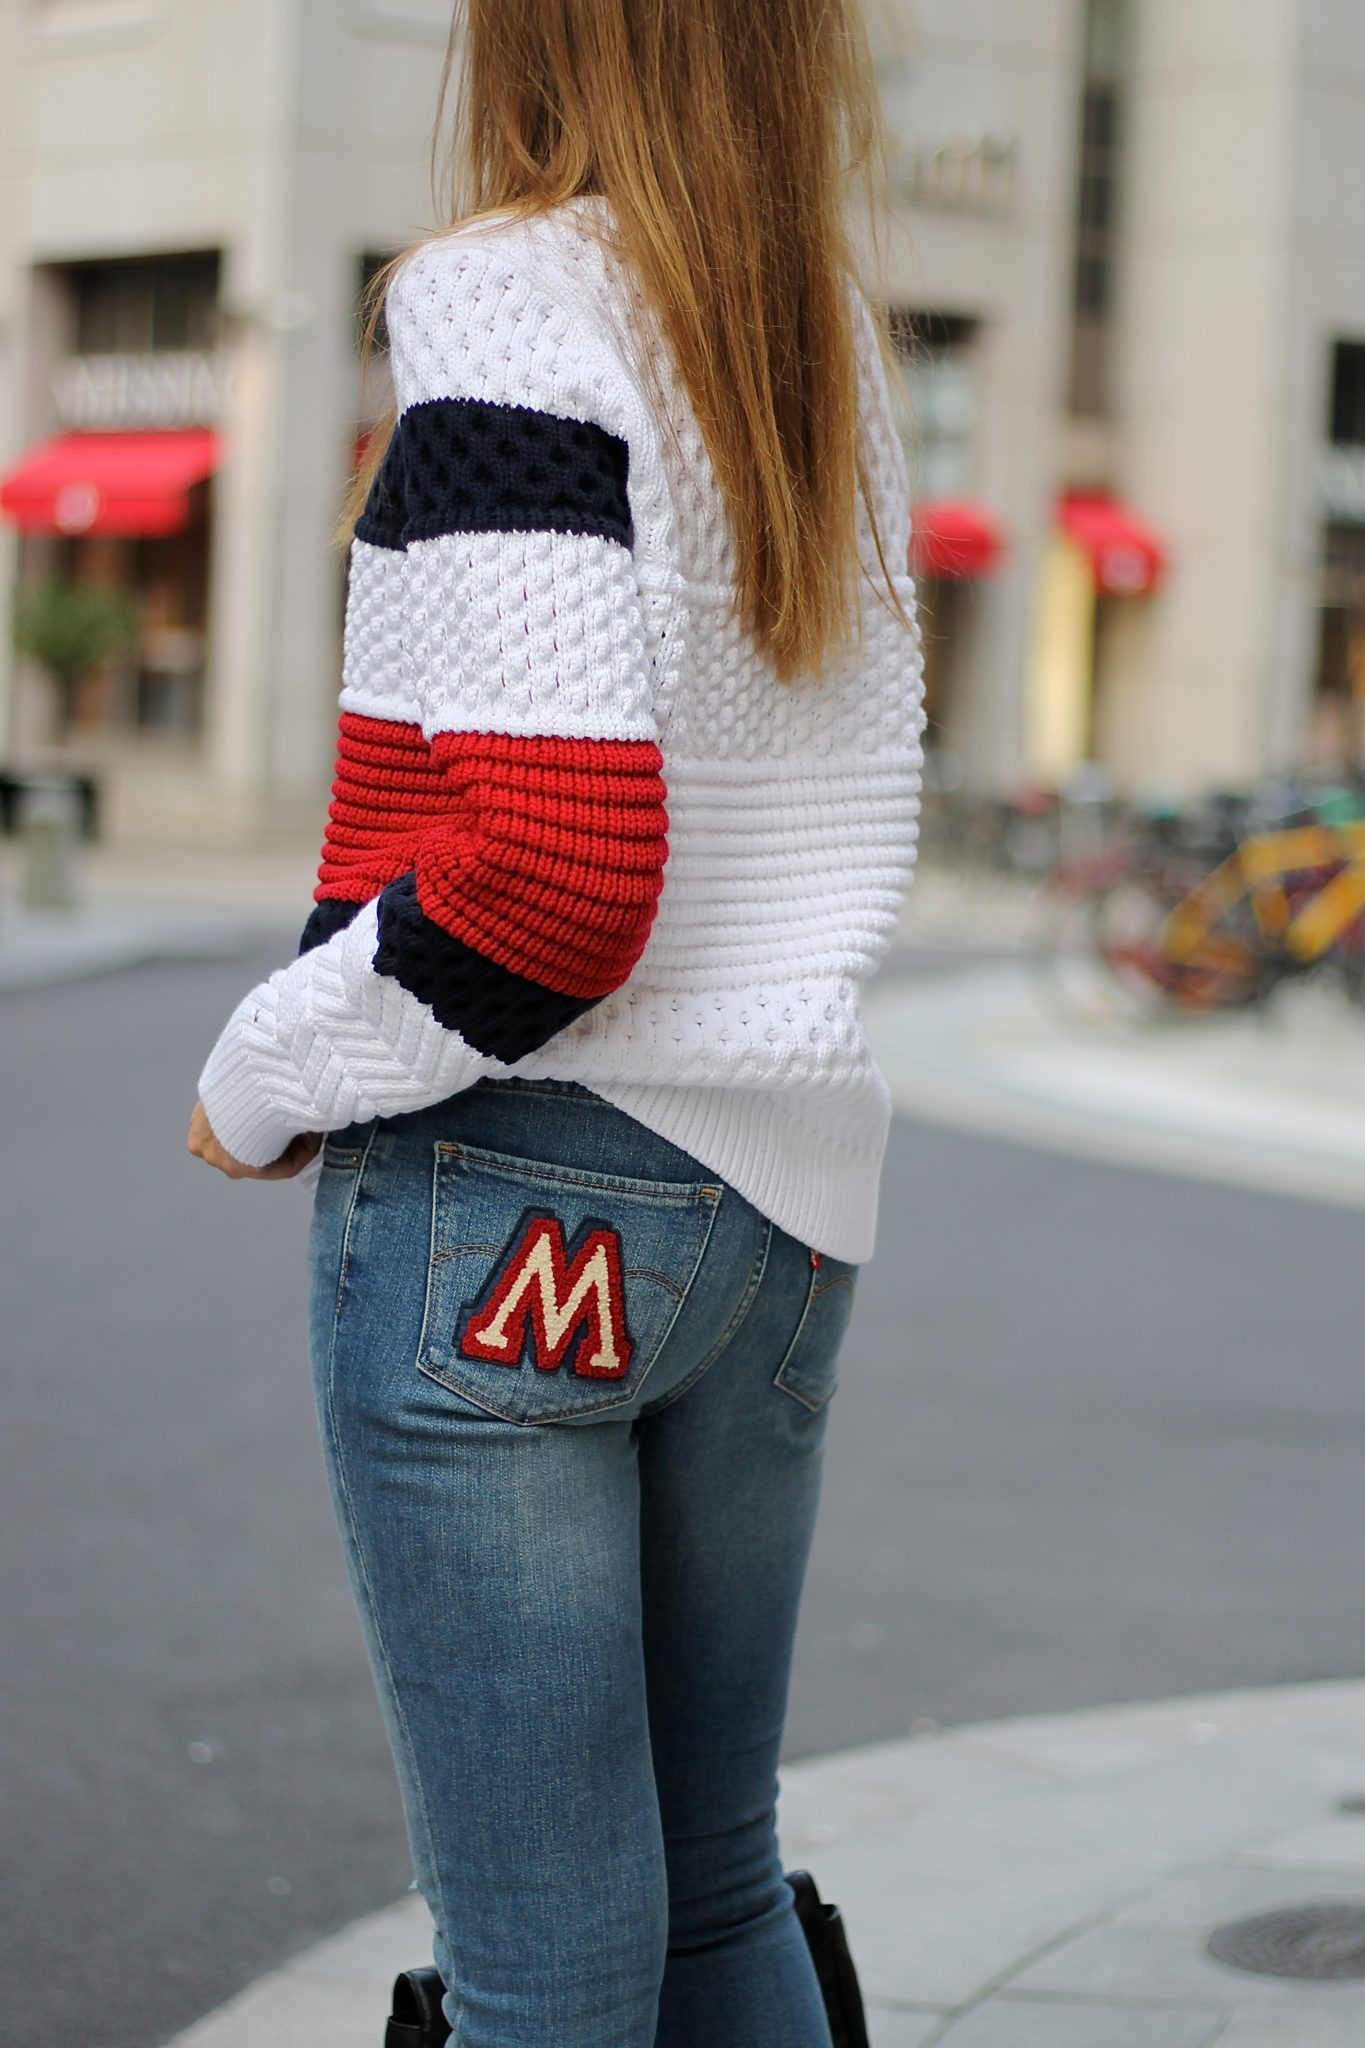 IMG 3090 - COLORFUL AUTUMN x TOMMY HILFIGER